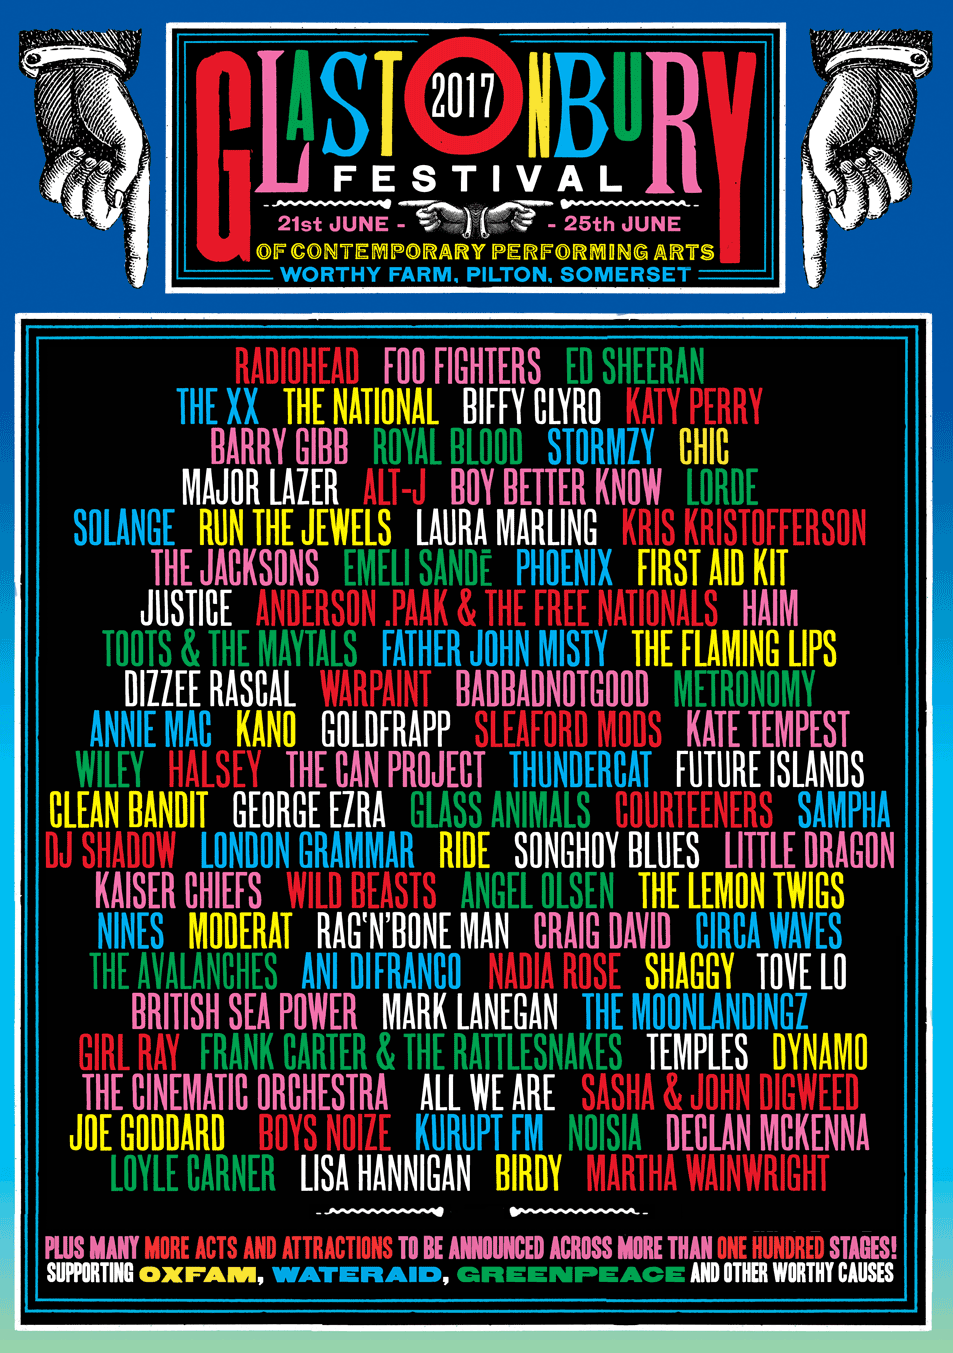 Glastonbury's first line up poster for 2017